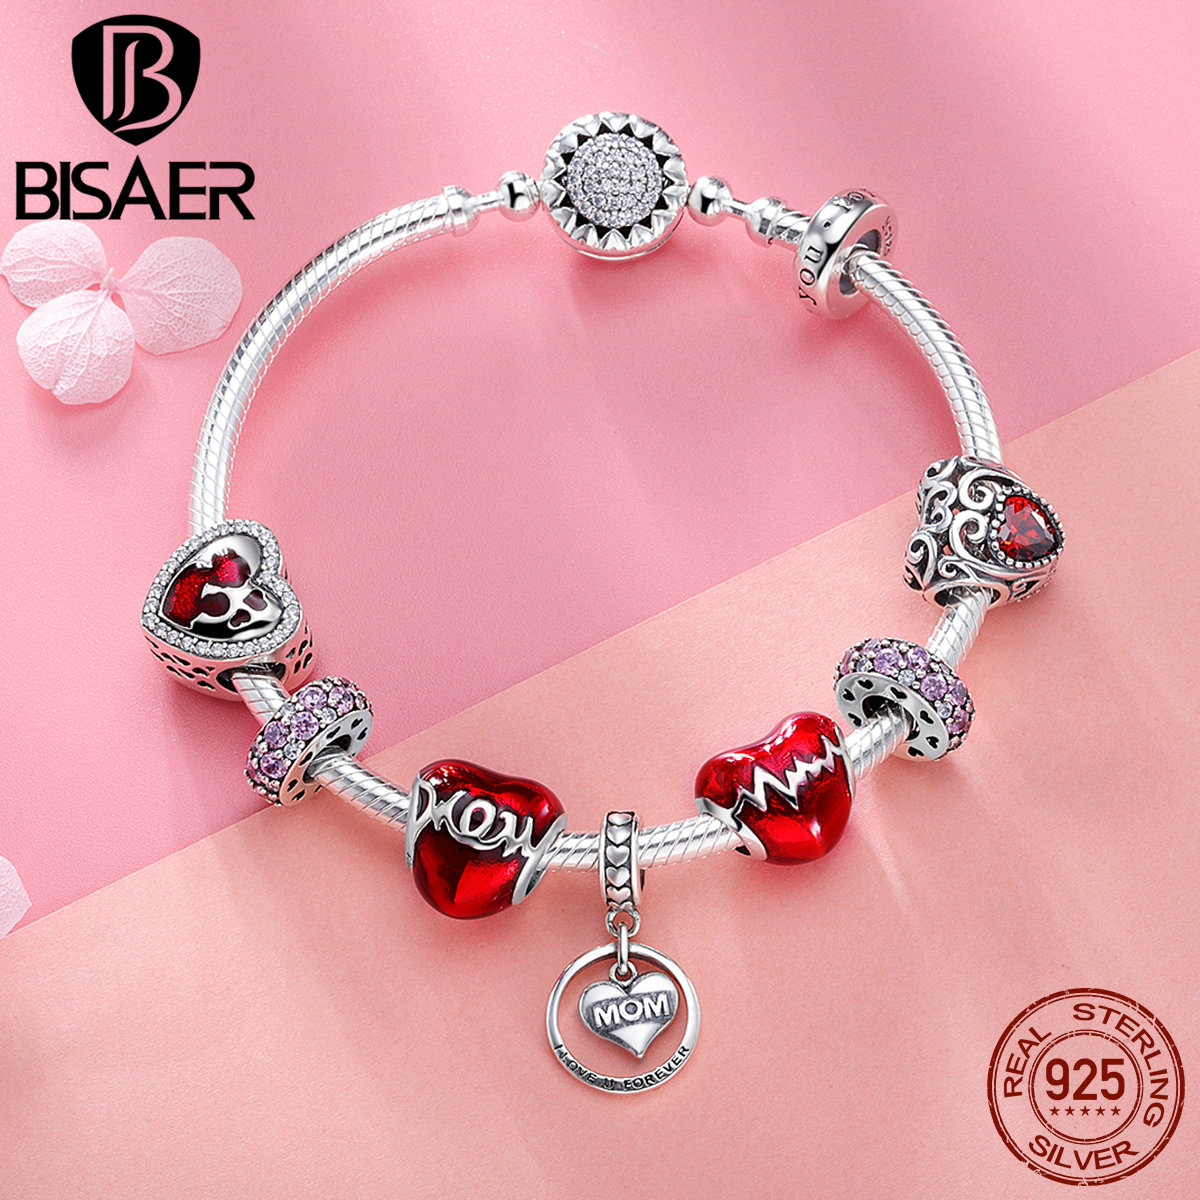 925 Sterling Silver Bracelets Mom Gift Heart Enamel Mother Femme Bracelets & Bangles for Women Authentic Silver Jewelry ECB807 nikiforova l the practical course of the runic psychology